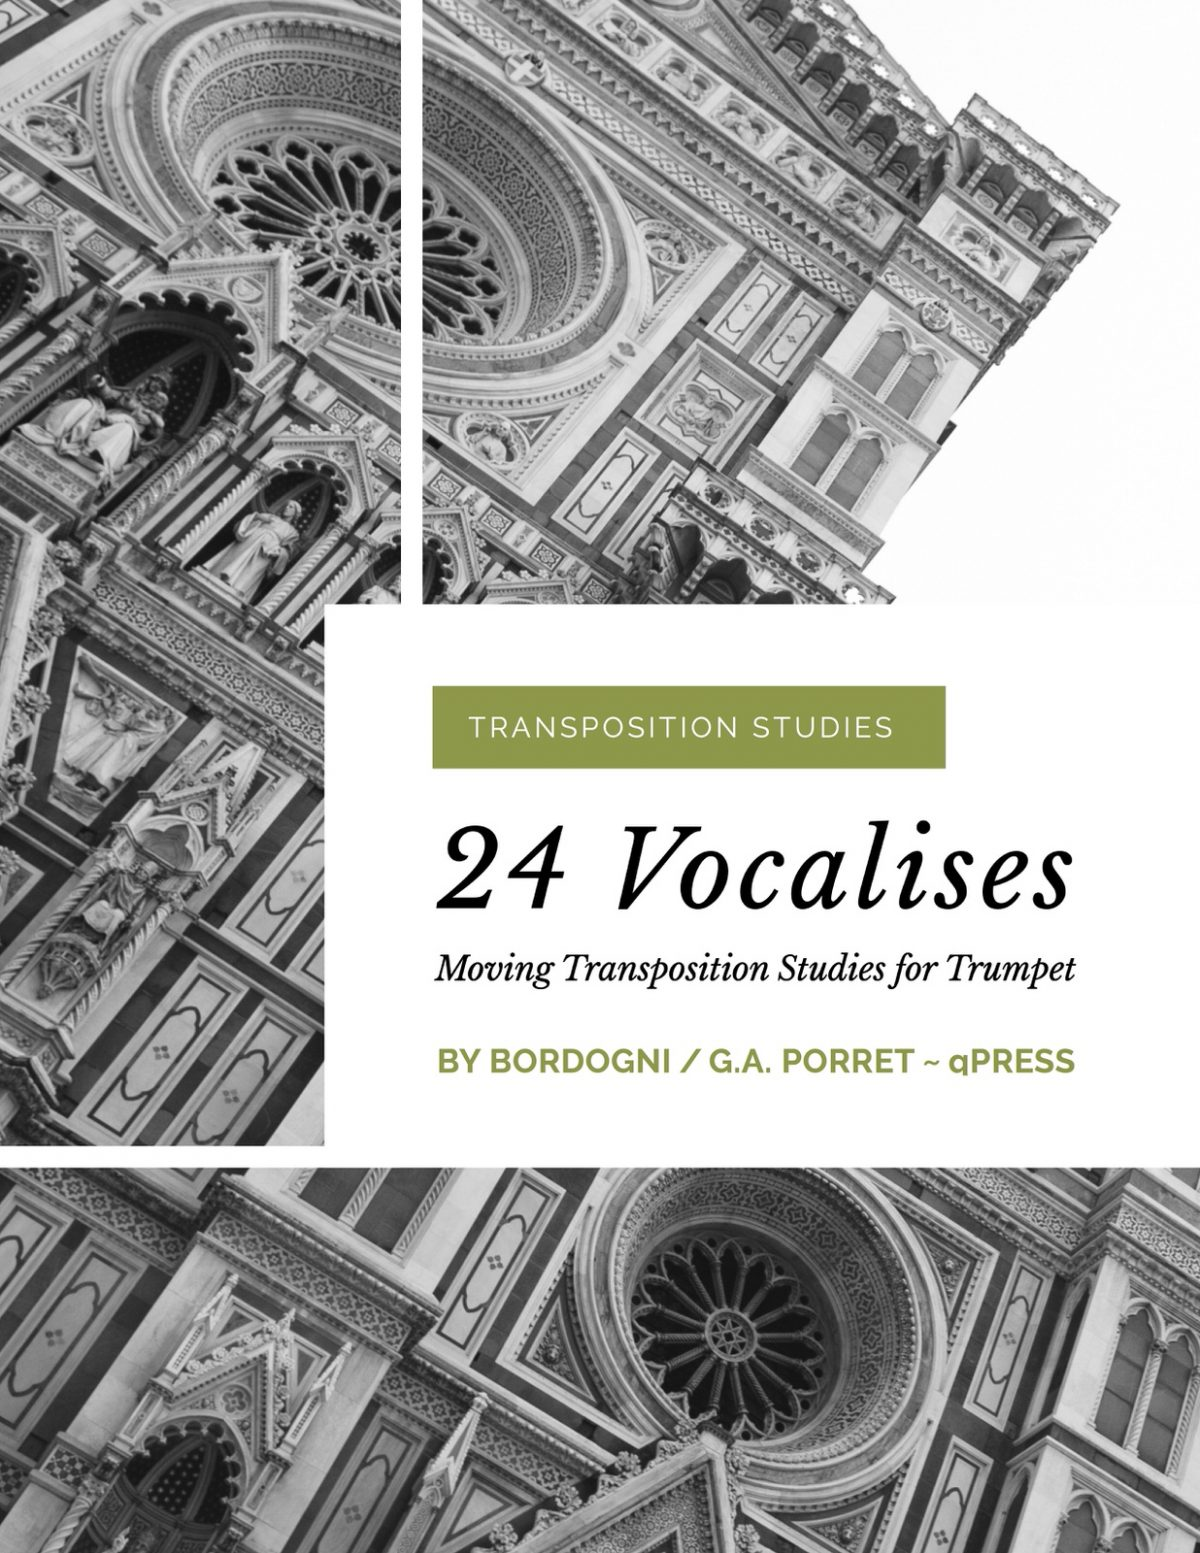 Bordogni, Vingt-Quatre Vocalises-p01